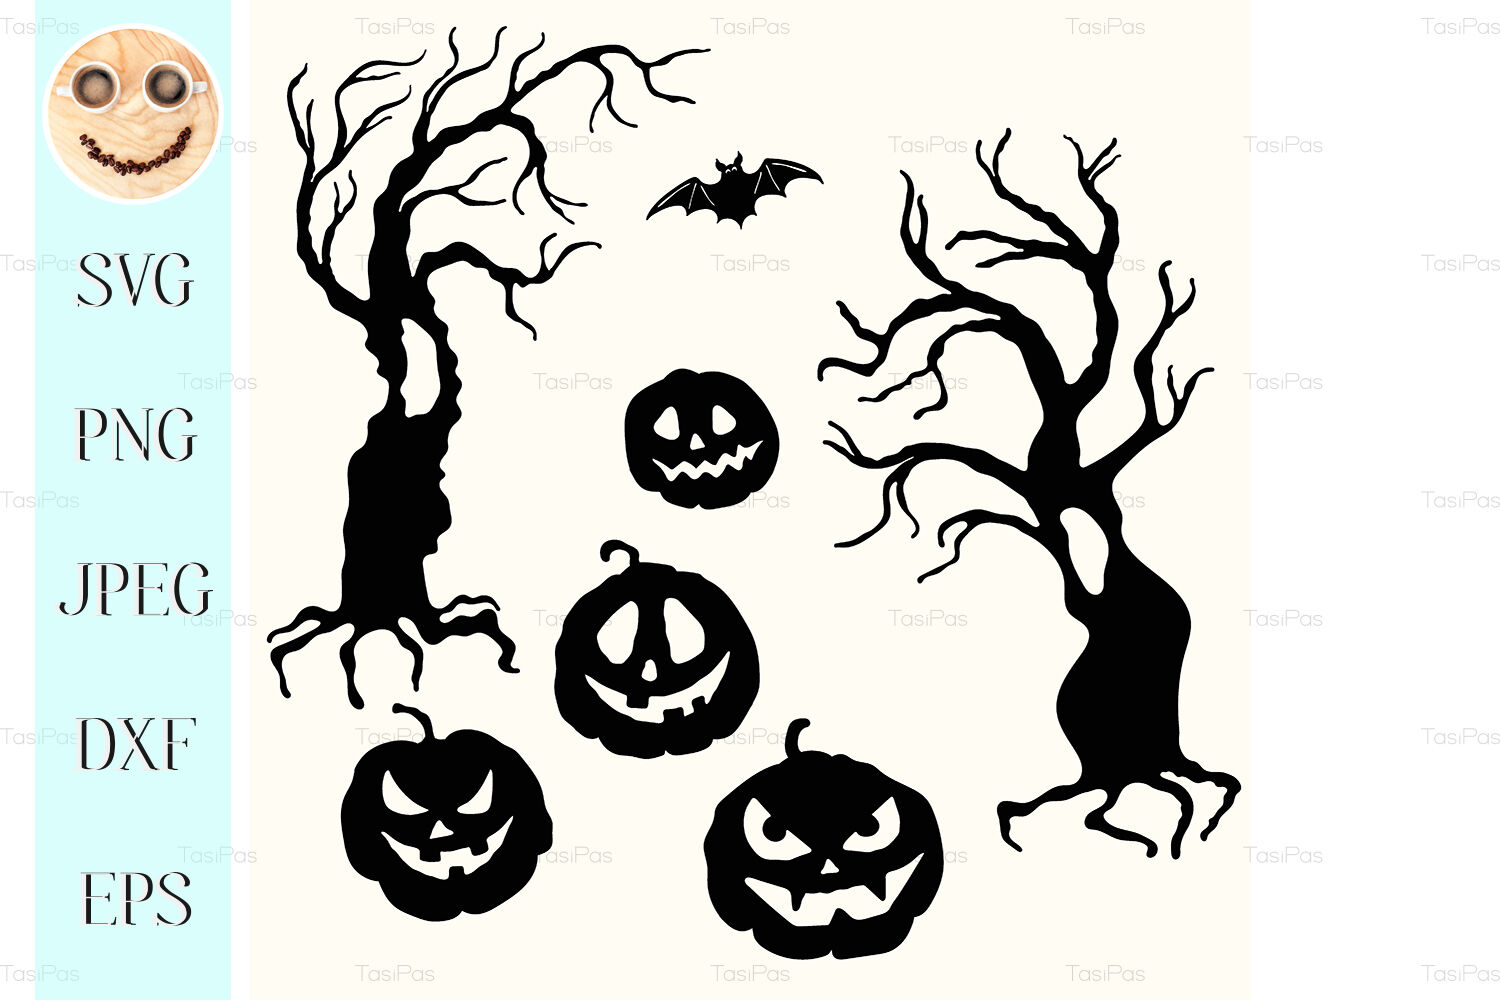 Halloween Pumpkin Lantern And Tree Stencil Template By Tasipas